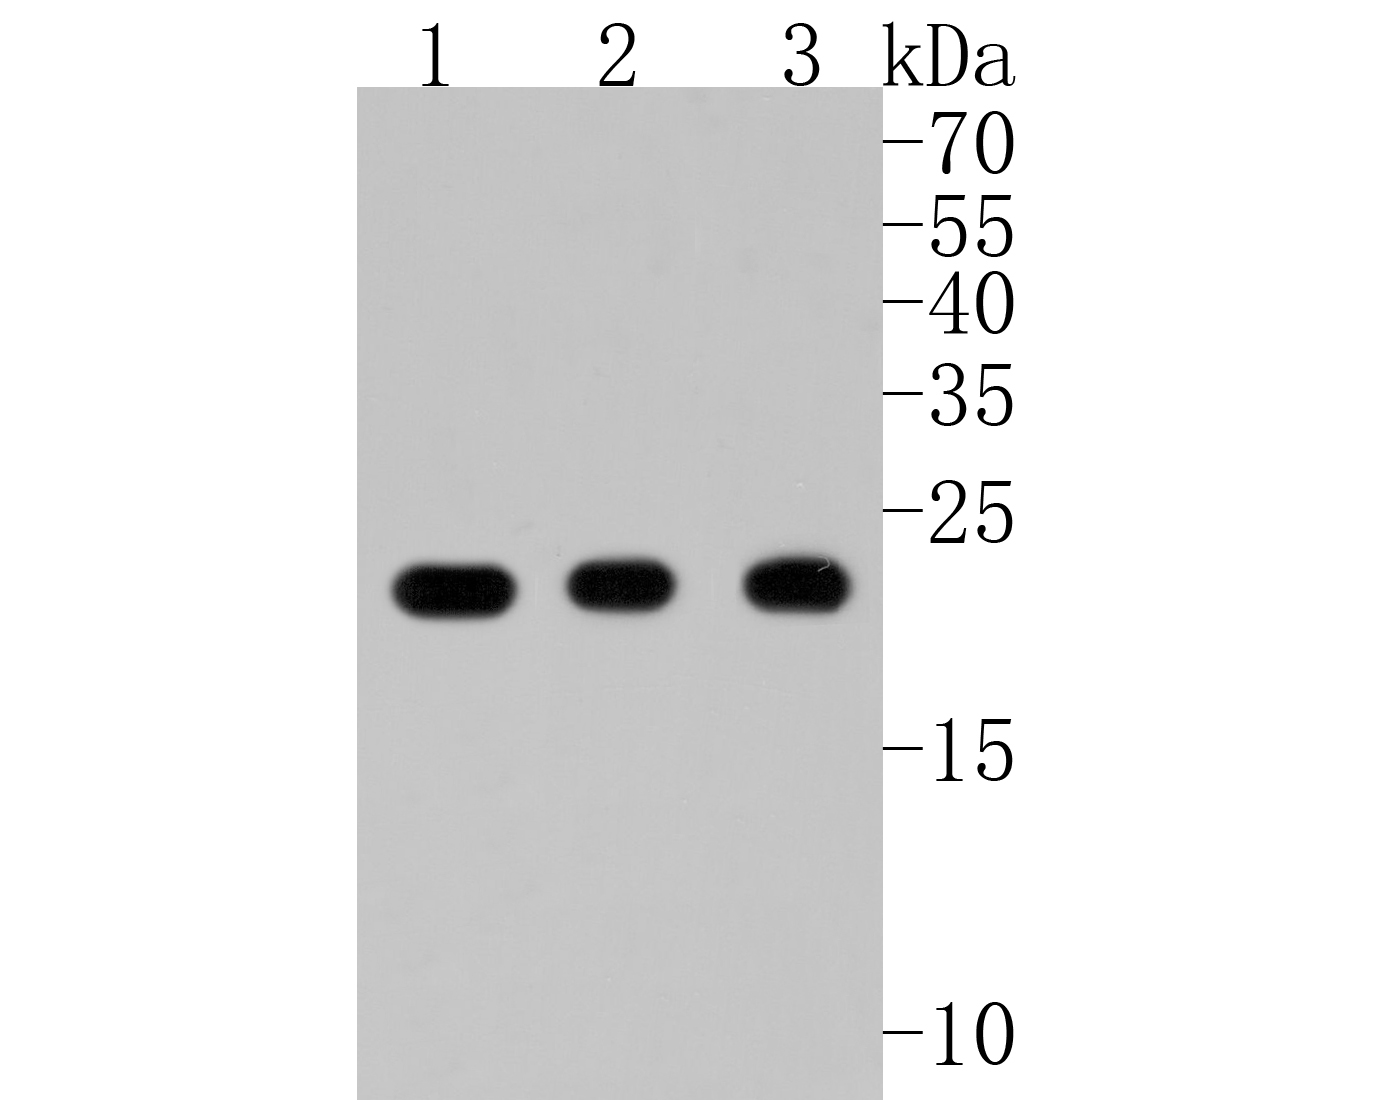 Western blot analysis of Peroxiredoxin 1 on different lysates. Proteins were transferred to a PVDF membrane and blocked with 5% BSA in PBS for 1 hour at room temperature. The primary antibody (ET1702-08, 1/500) was used in 5% BSA at room temperature for 2 hours. Goat Anti-Rabbit IgG - HRP Secondary Antibody (HA1001) at 1:5,000 dilution was used for 1 hour at room temperature.<br /> Positive control: <br /> Lane 1: Hela cell lysate<br /> Lane 2: A431 cell lysate<br /> Lane 2: HepG2 cell lysate